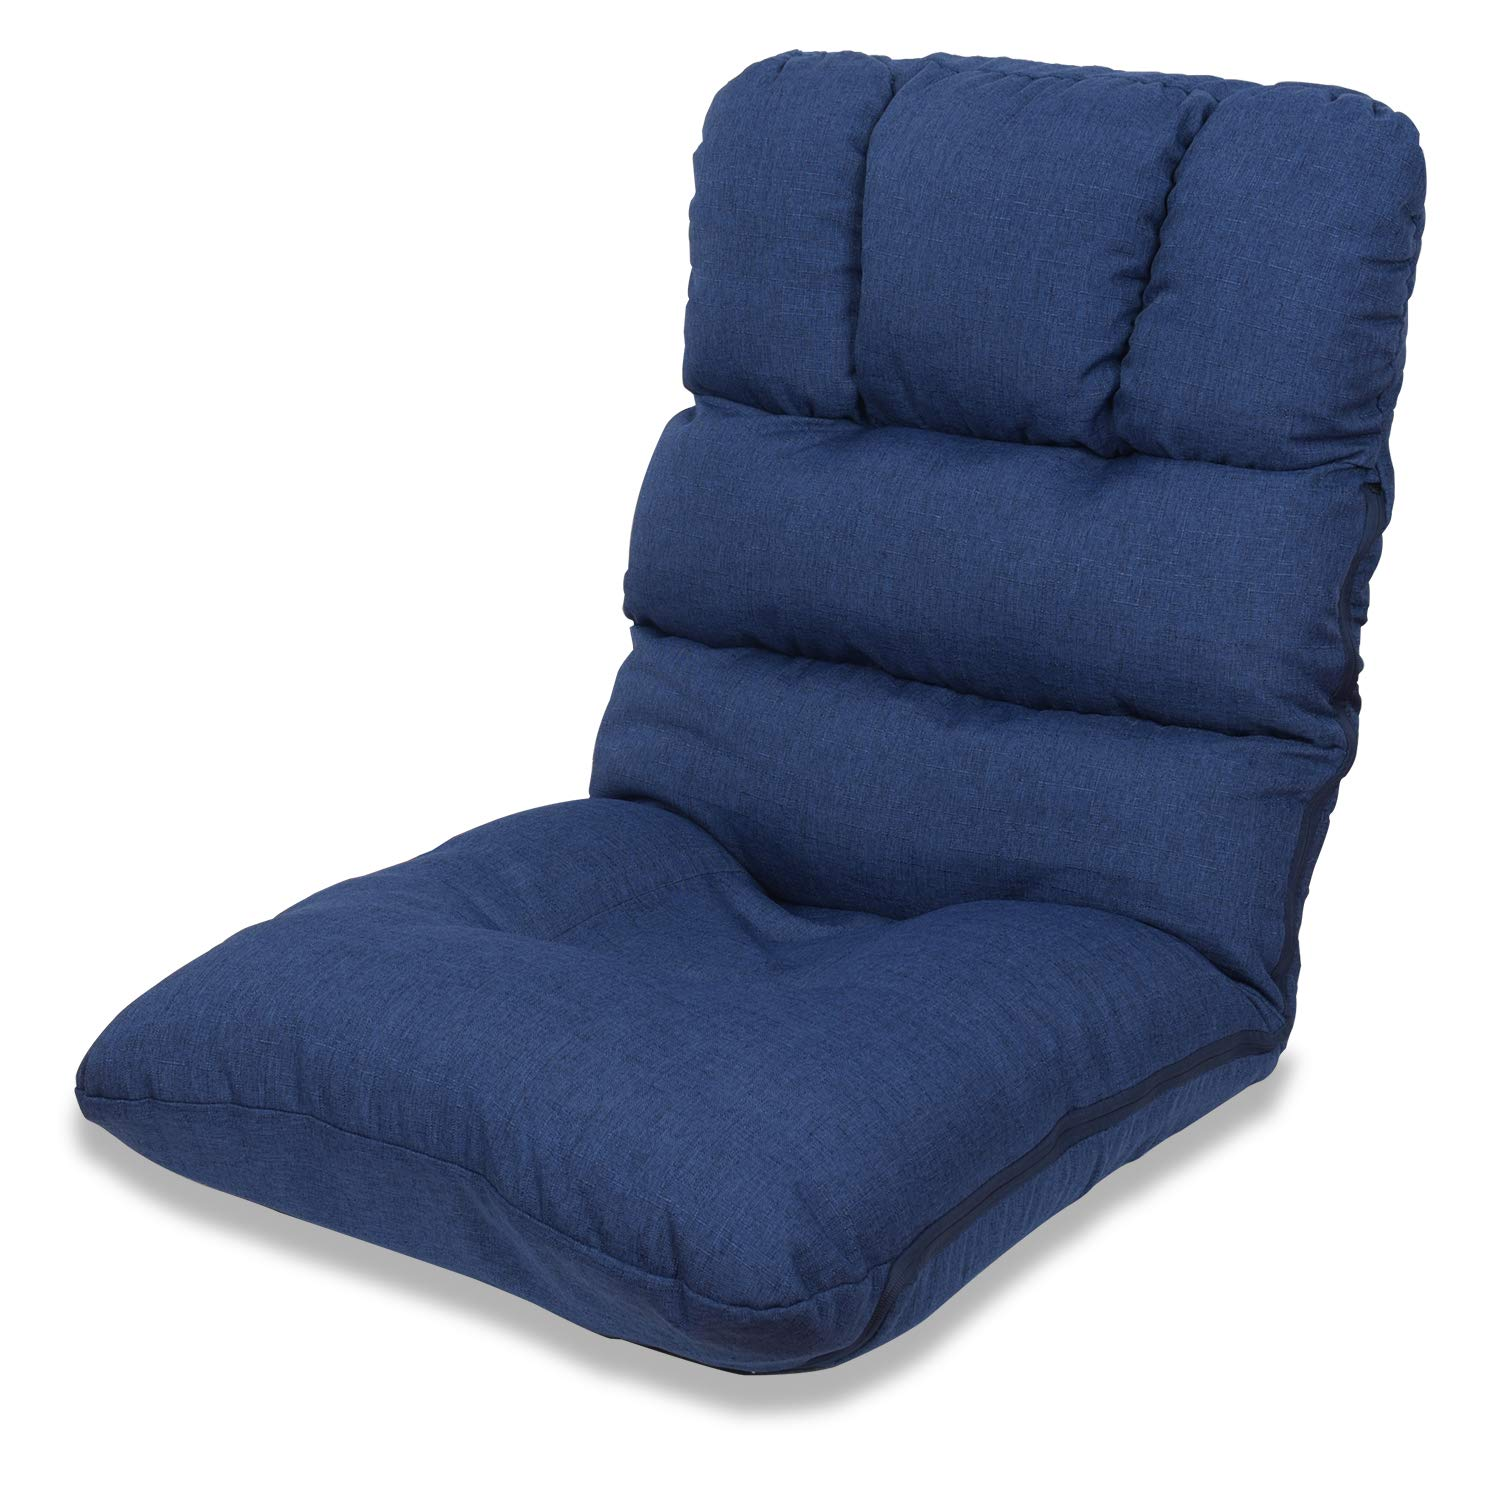 WAYTRIM Indoor Adjustable Floor Chair 5-Position Folding Padded Kids Gaming Sofa Chair, Perfect for Meditation, Reading, TV Watching, Blue by WAYTRIM